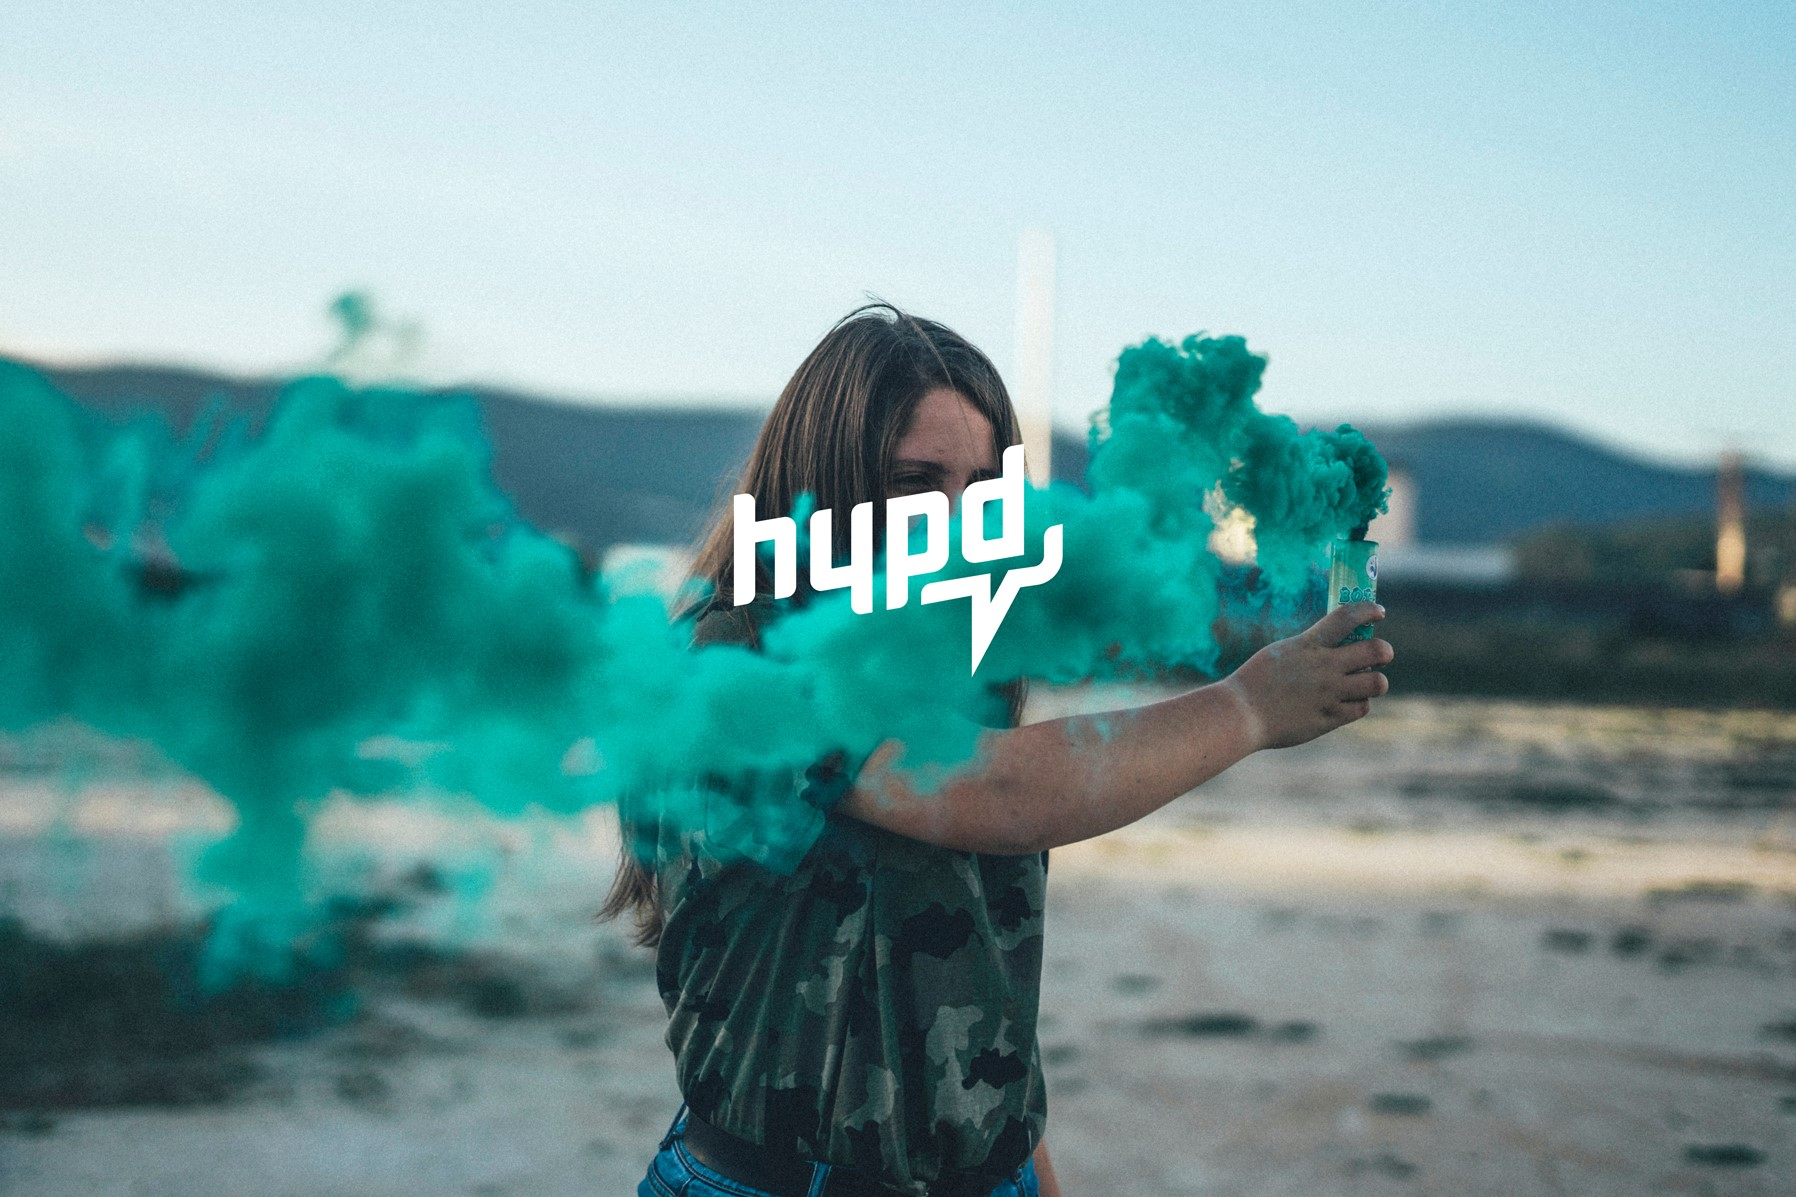 Hypd    -  Copyright © 2018